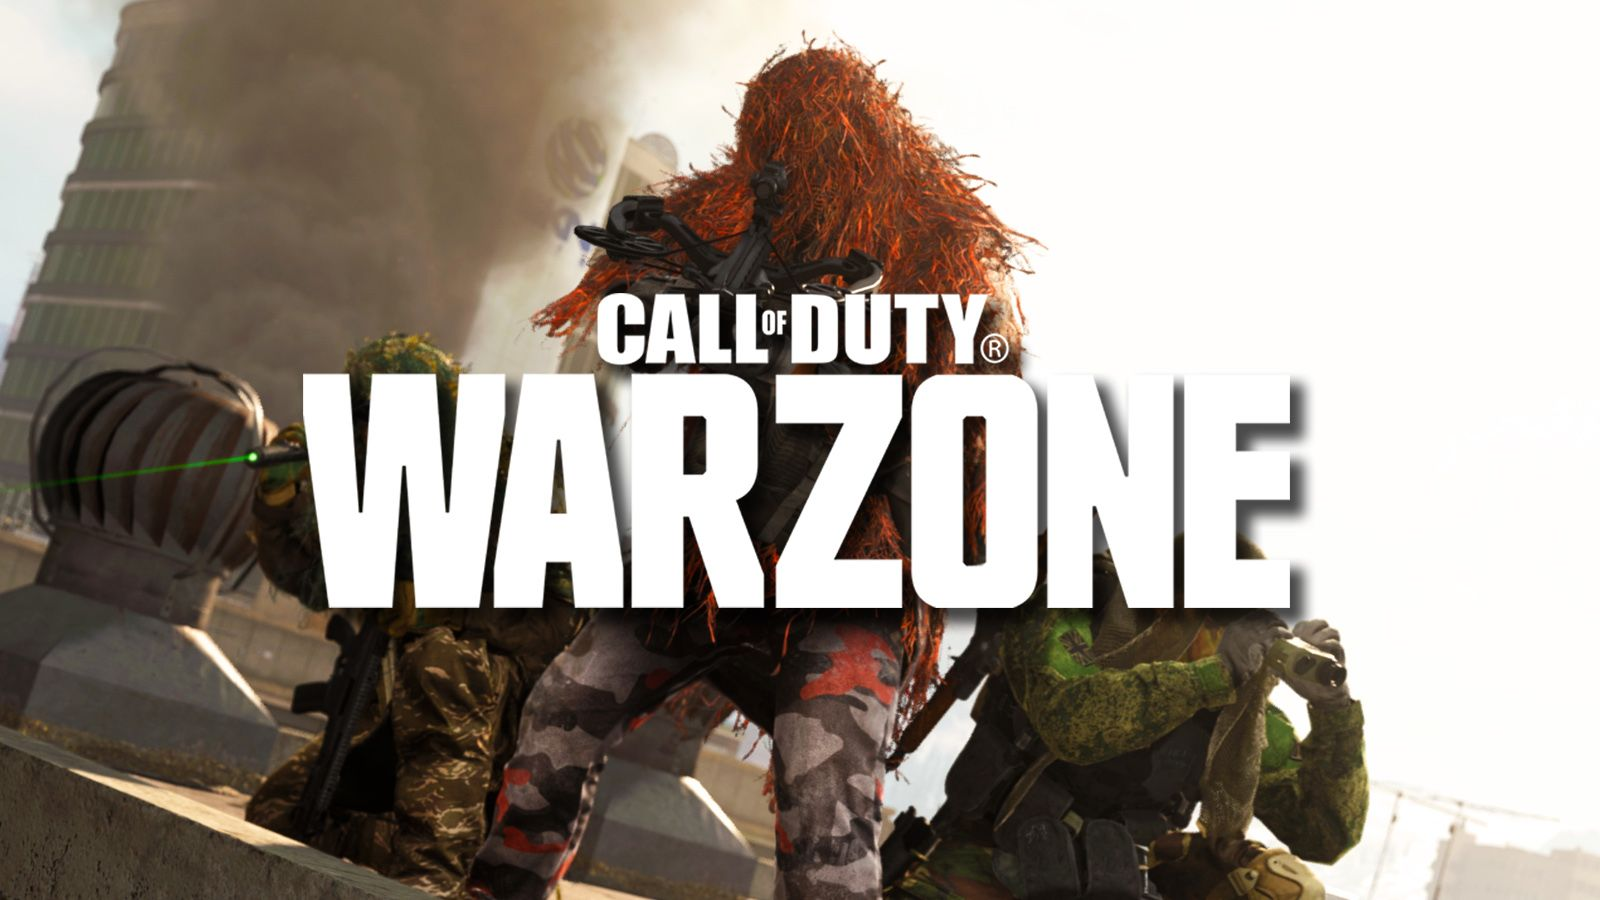 Call Of Duty Warzone Wallpapers Top Free Call Of Duty Warzone